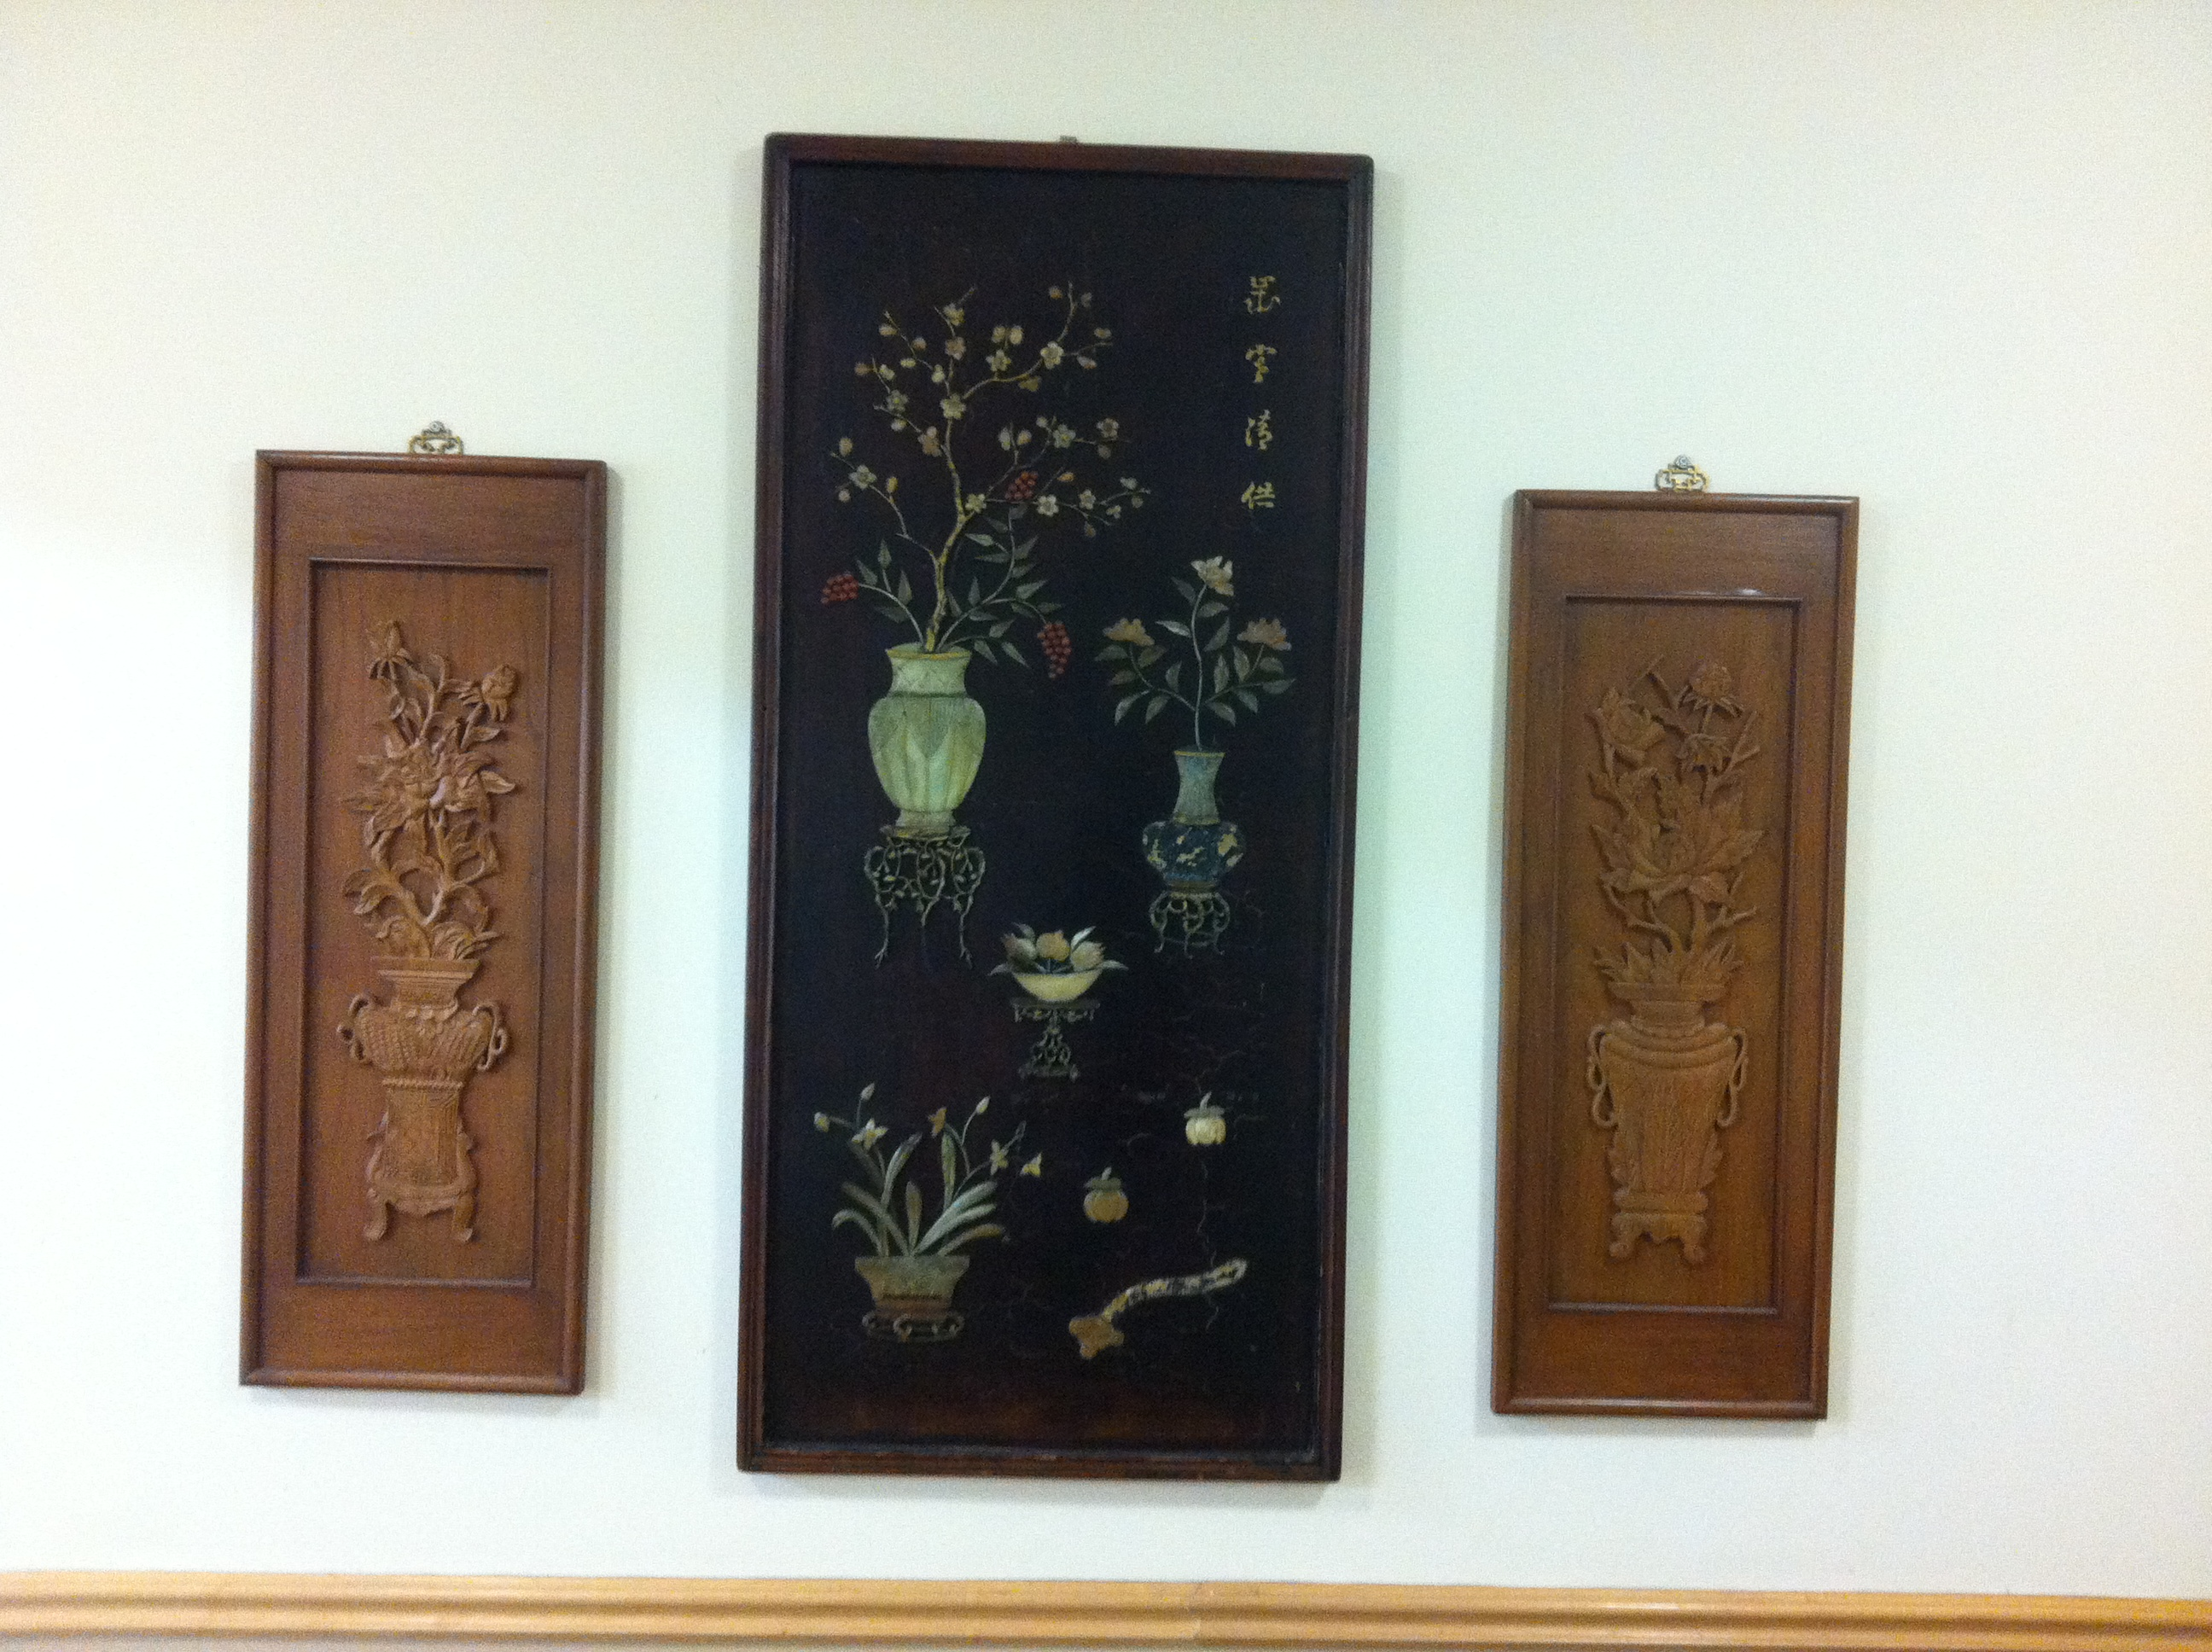 More relics of the Talisman's glorious Polynesian past...some wall hangings on a wall hidden by an emergency exit.